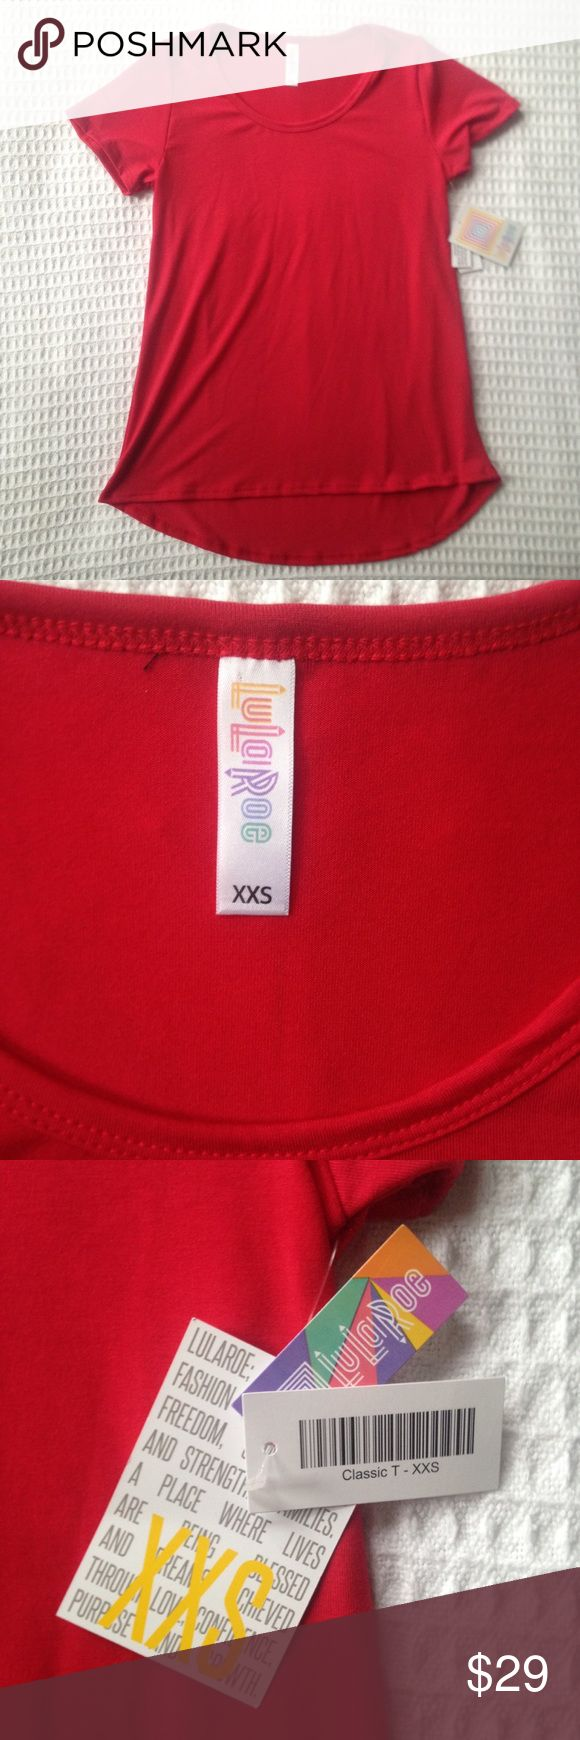 """NWT Lula Roe classic t red XXS The LuLaRoe """"Classic T"""" is sure to become a wardrobe staple as the perfect compliment to all your LuLaRoe skirts and  leggings. The Classic T is made from comfortable spun polyester jersey and is short sleeved with a high round neck line. As mentioned, the Classic T pairs well with leggings as the back is slightly longer to flatter bodies of all shapes and sizes. The Classic T is sure to become an essential foundational piece for a truly phenomenal wardrobe. No…"""